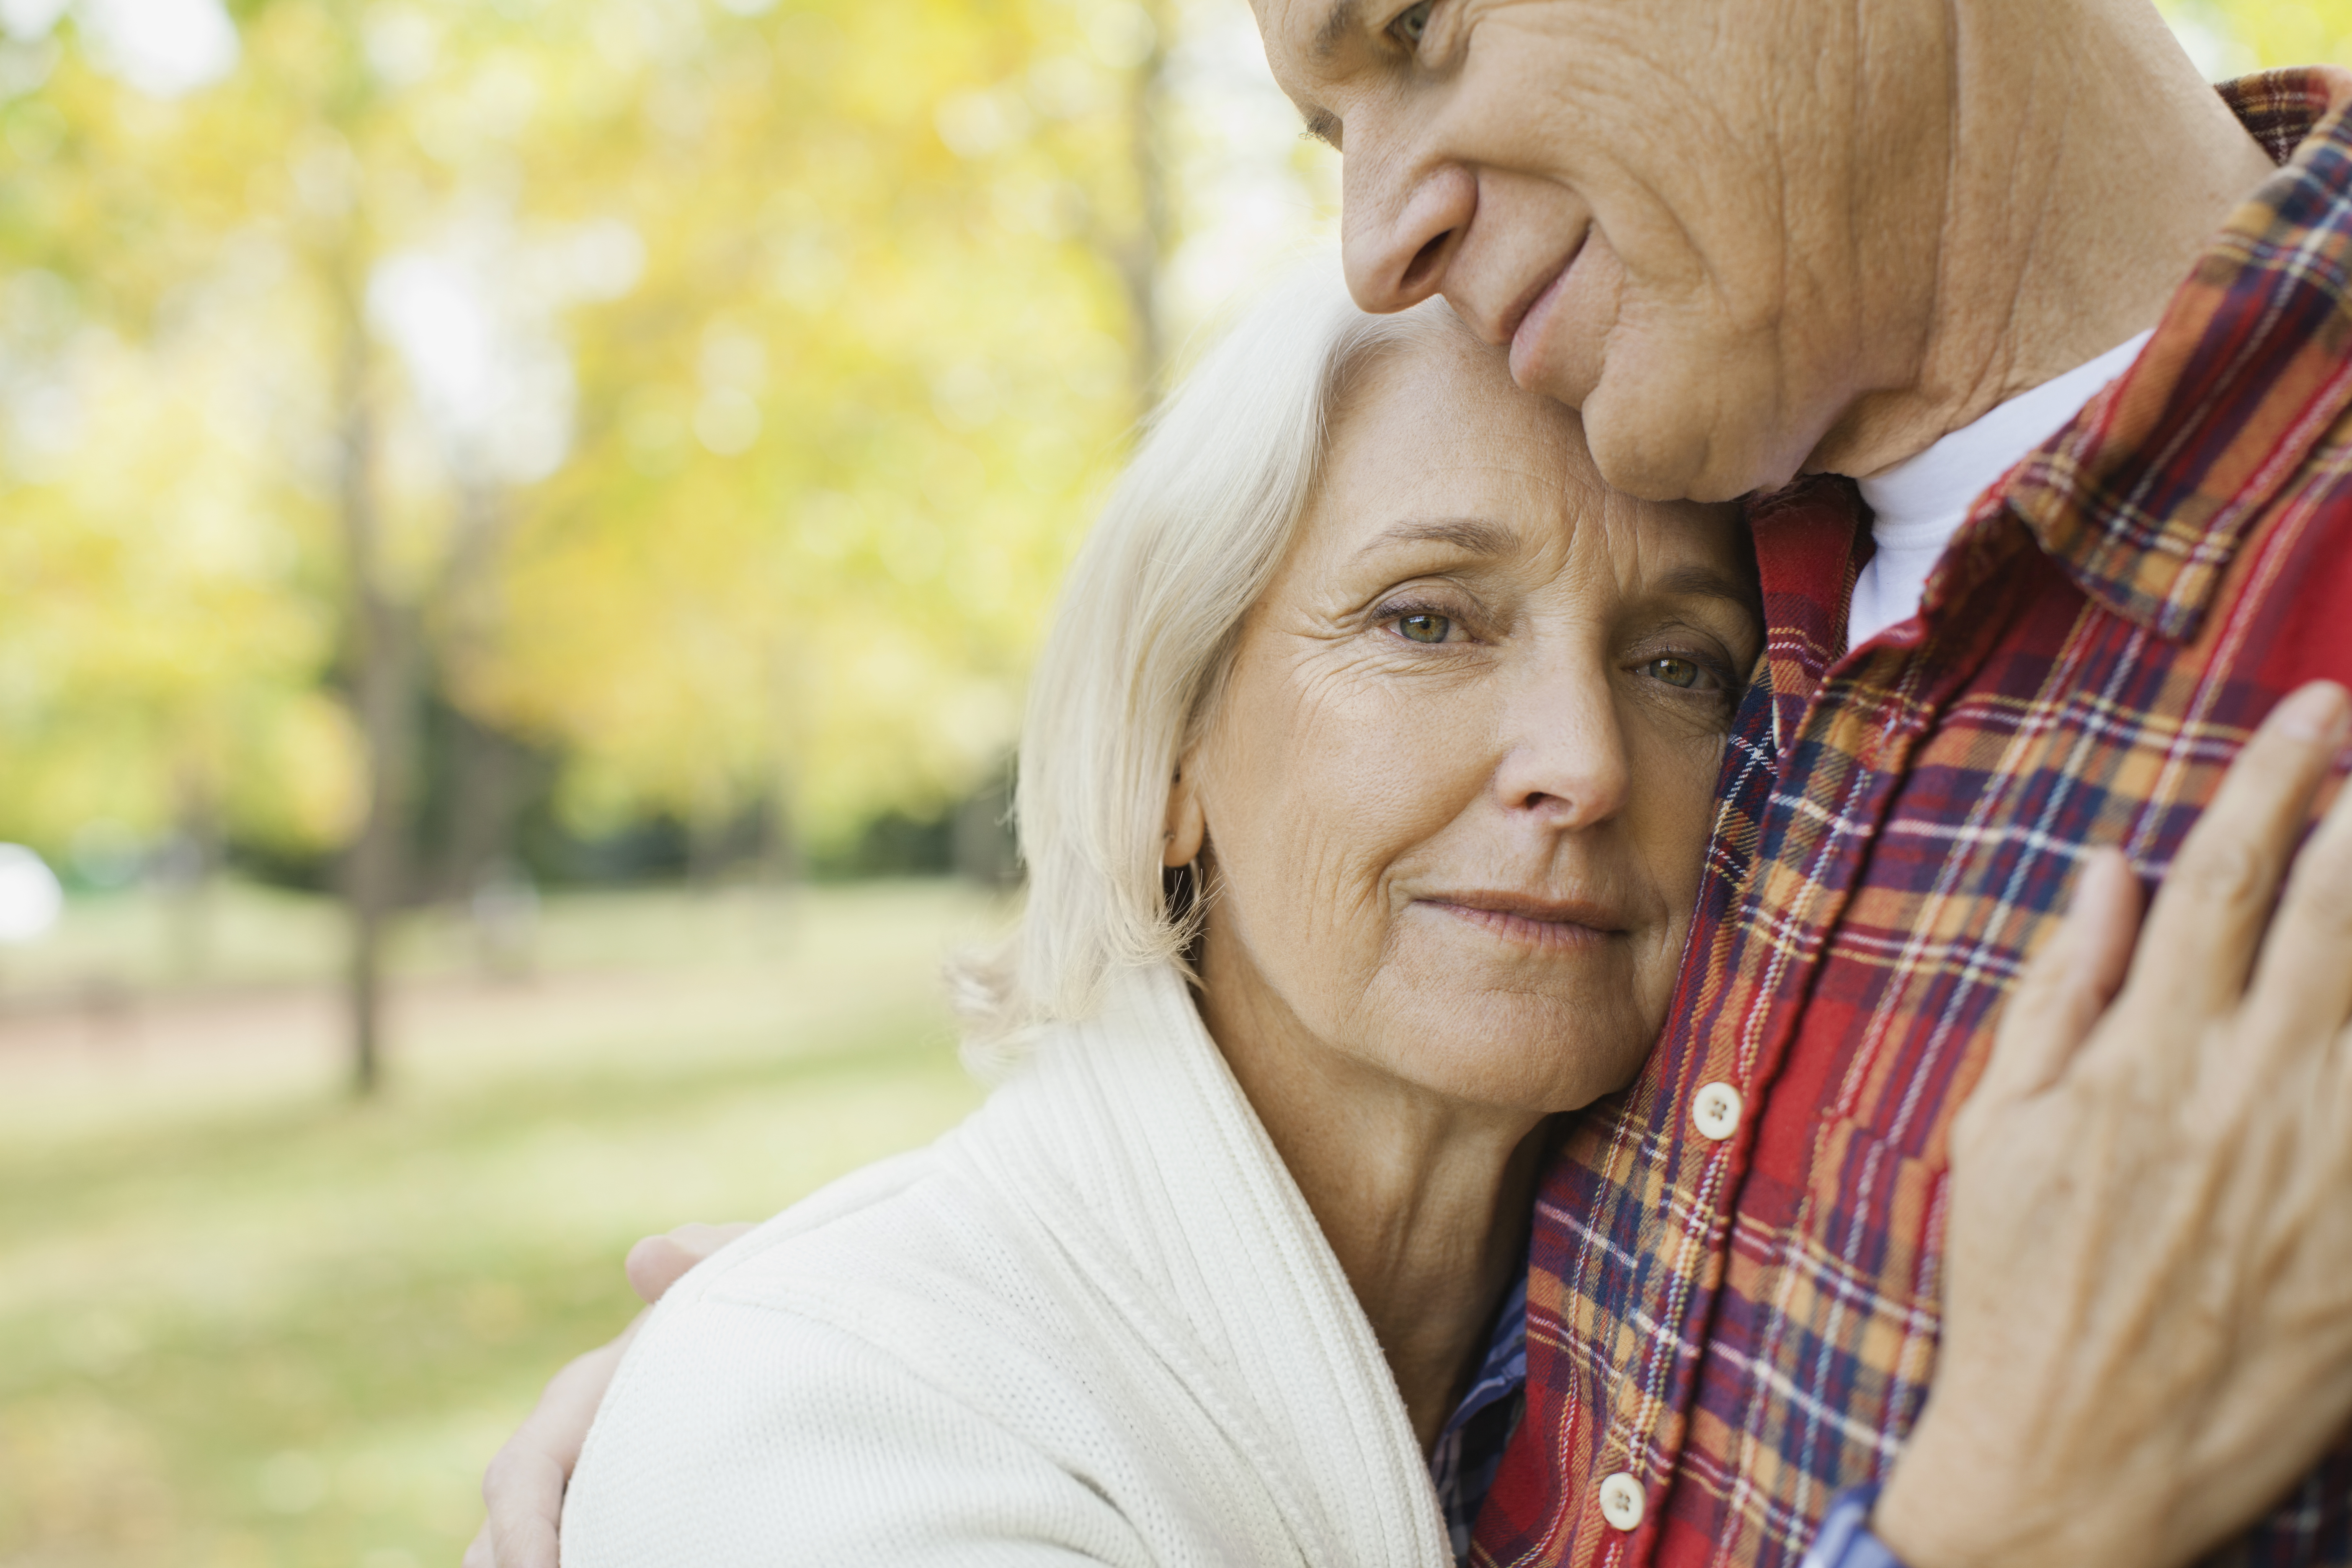 6 Expert Tips for Finding Lasting Love Later in Life